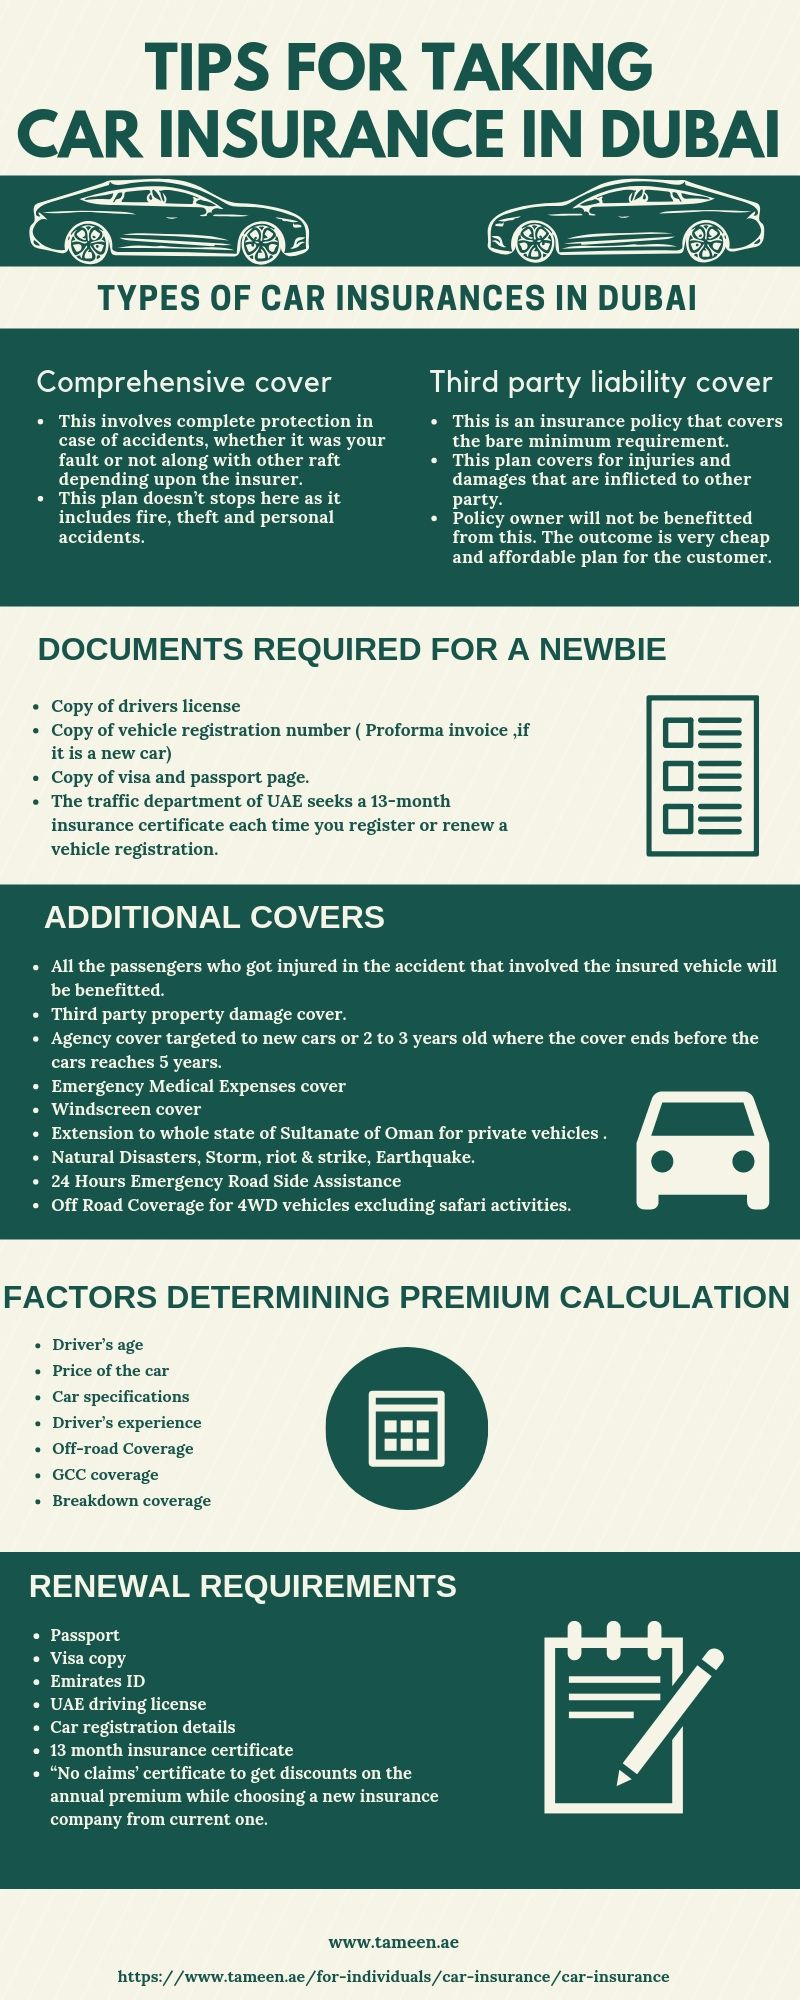 Here are the different car insurance policies and